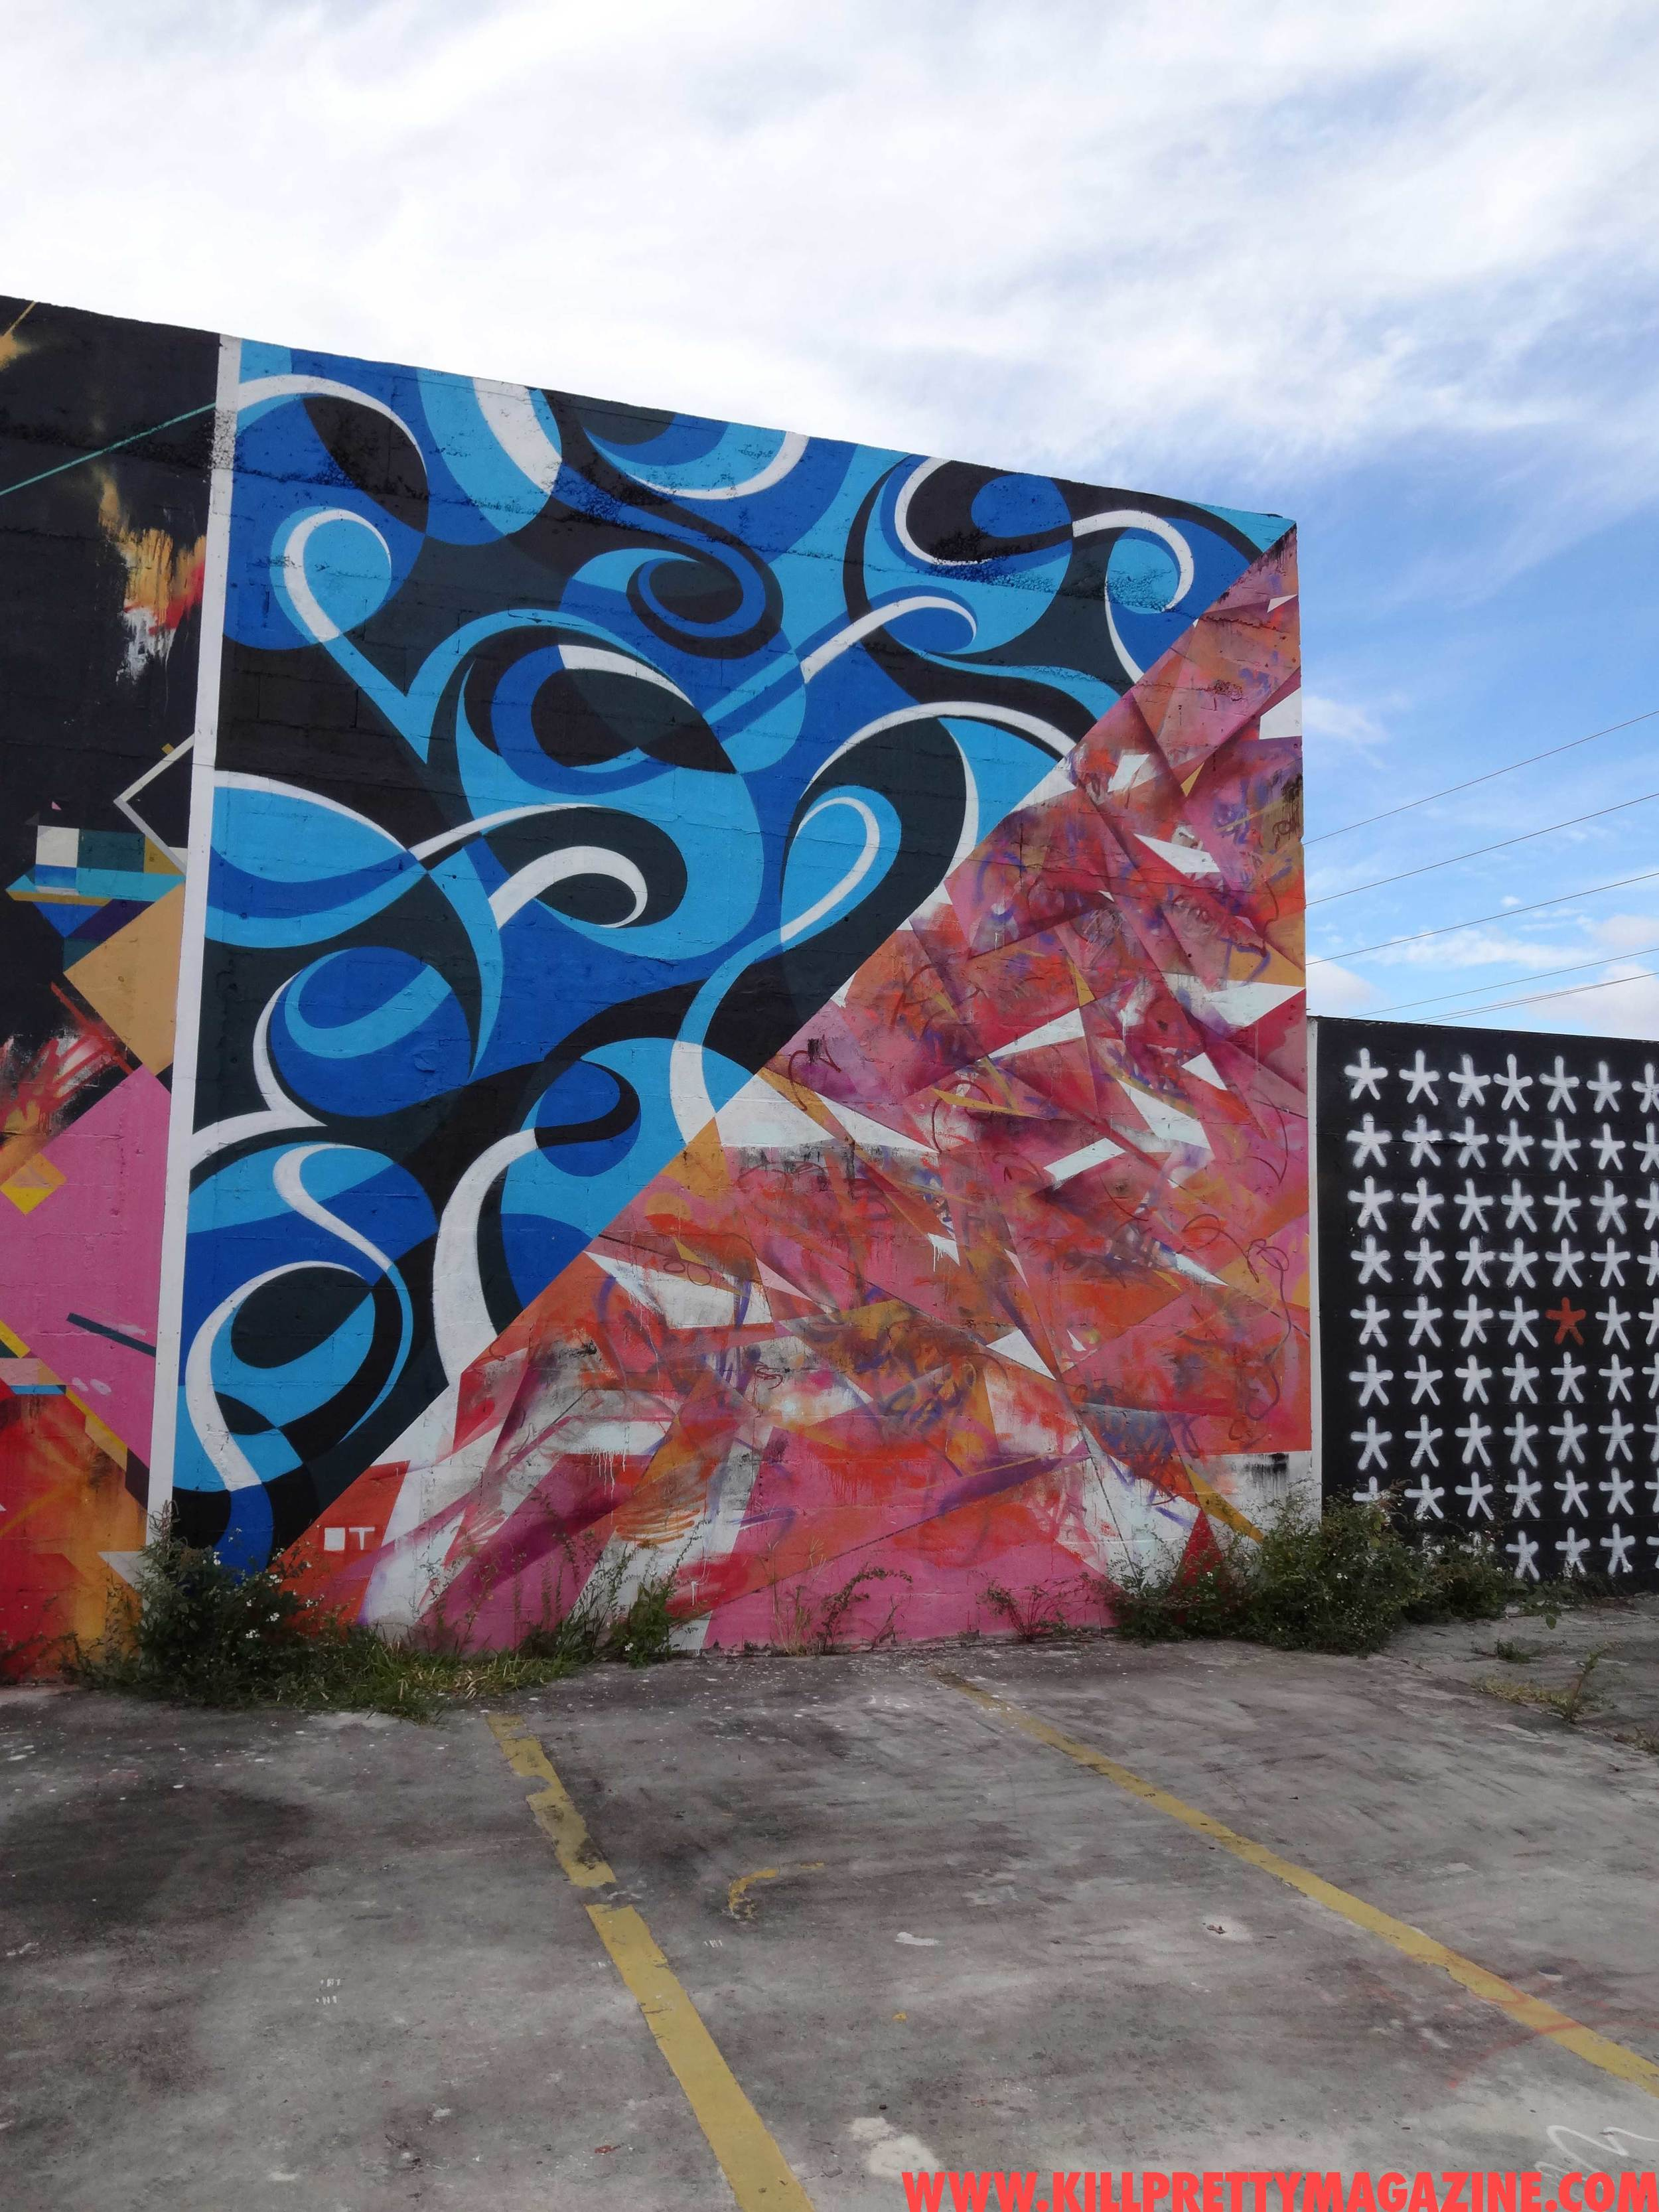 art-basel-2013-kill-pretty-graffiti-magazine-photo85